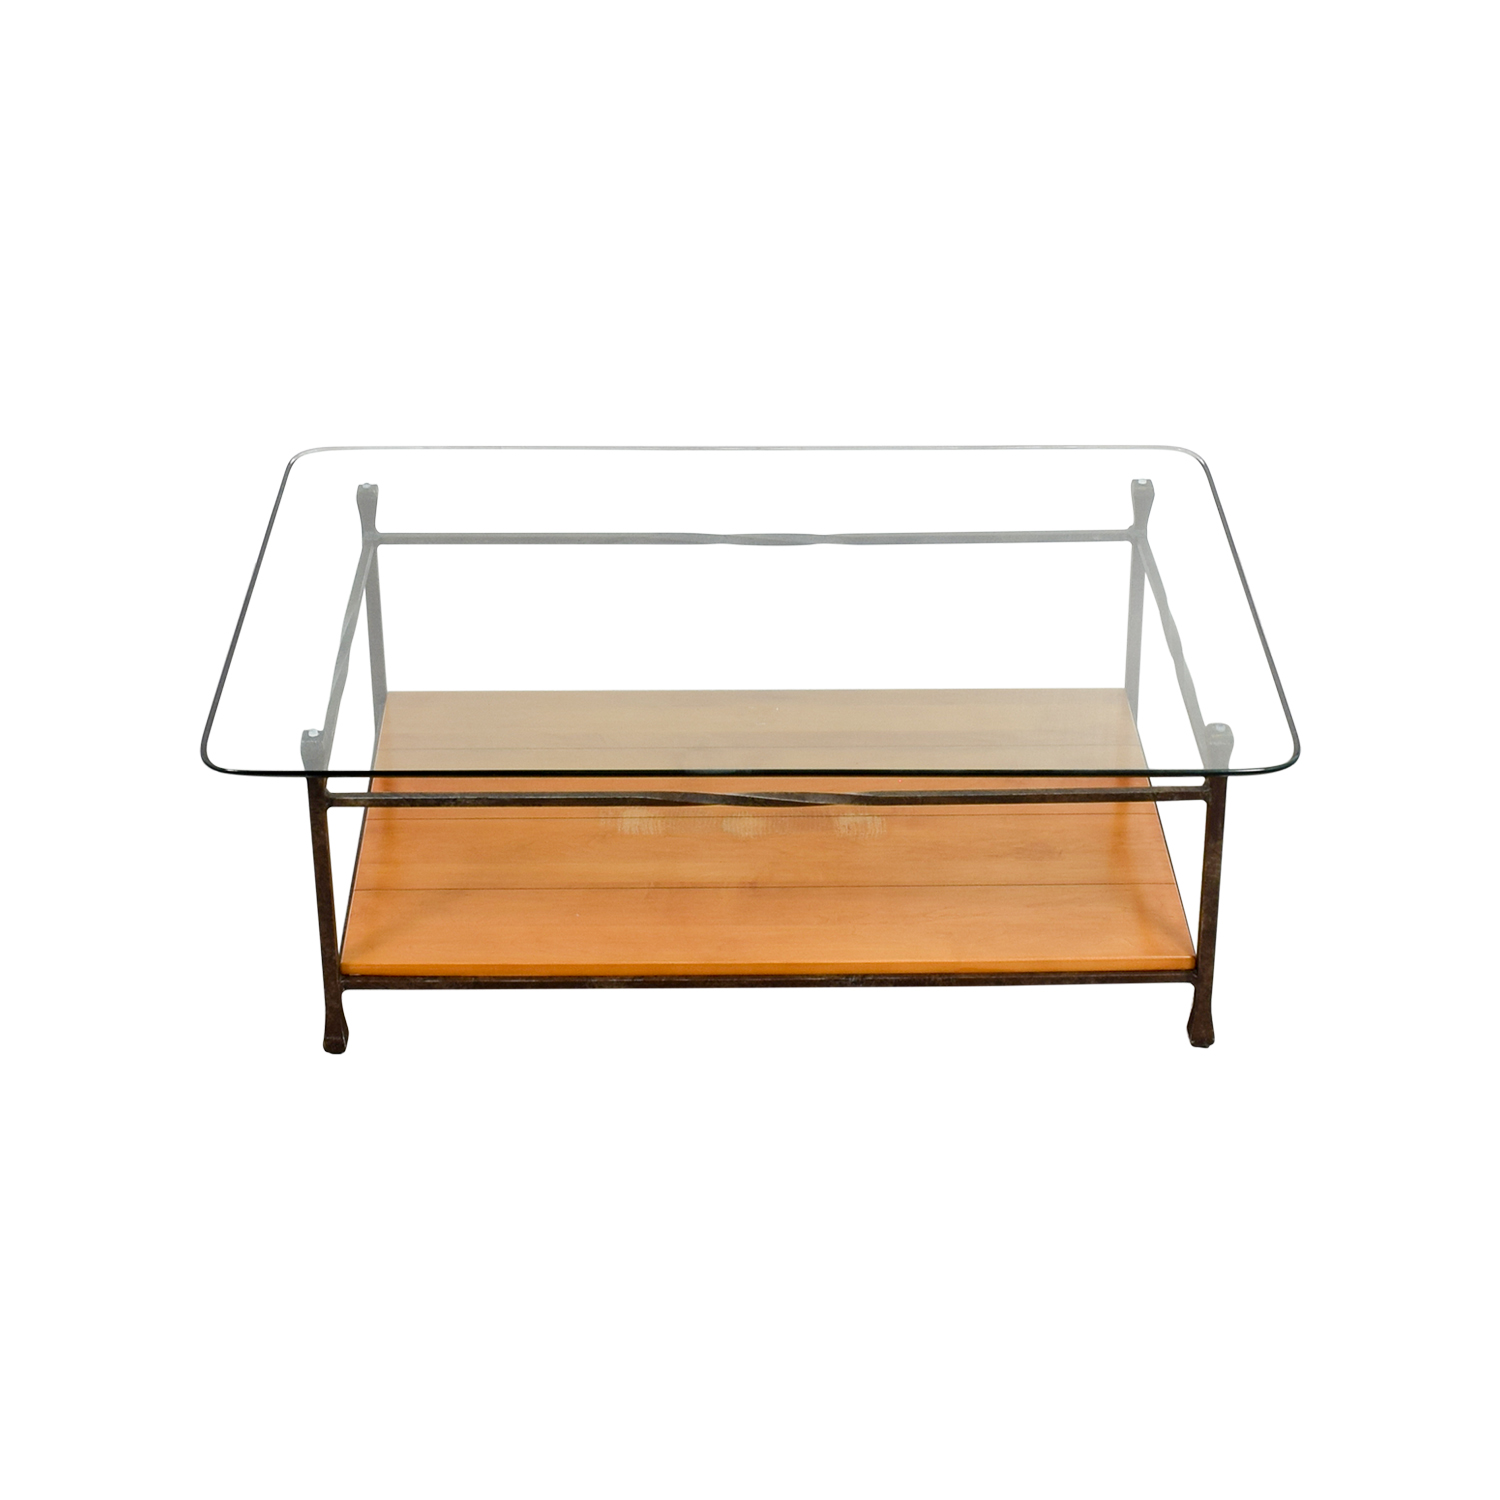 Ethan allen discount coupon Used glass coffee table